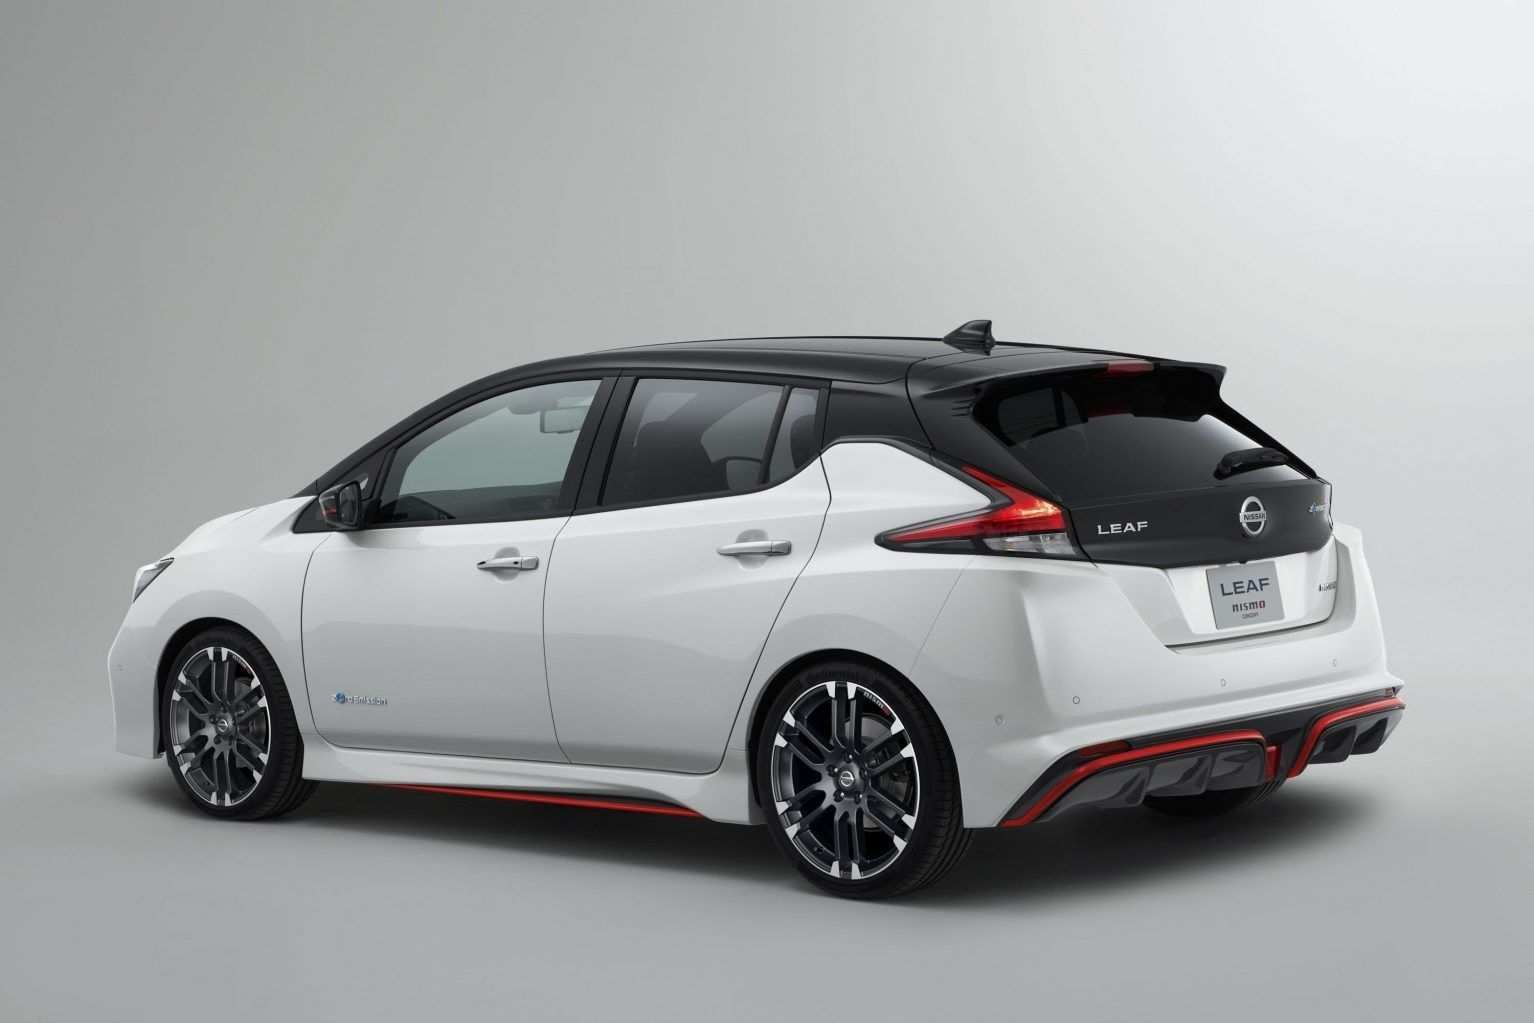 88 The Best Nissan Leaf 2019 Review New Review